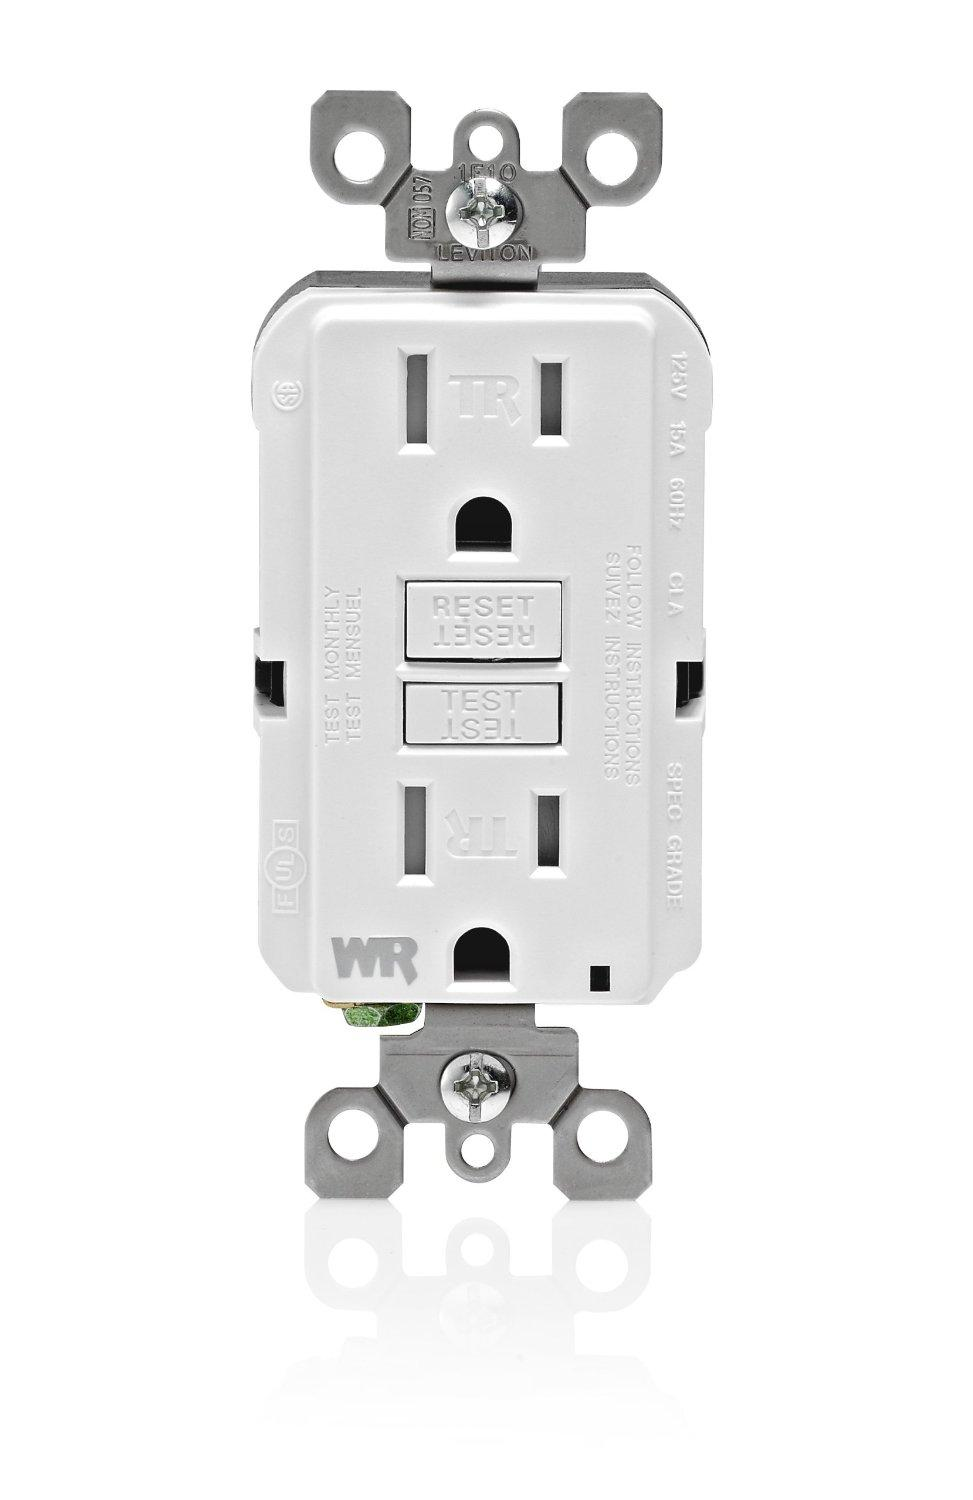 Leviton Gfwt1 W Self Test Smartlockpro Slim Gfci Weather Resistant How To Hook Up A Gfi Outlet From The Manufacturer